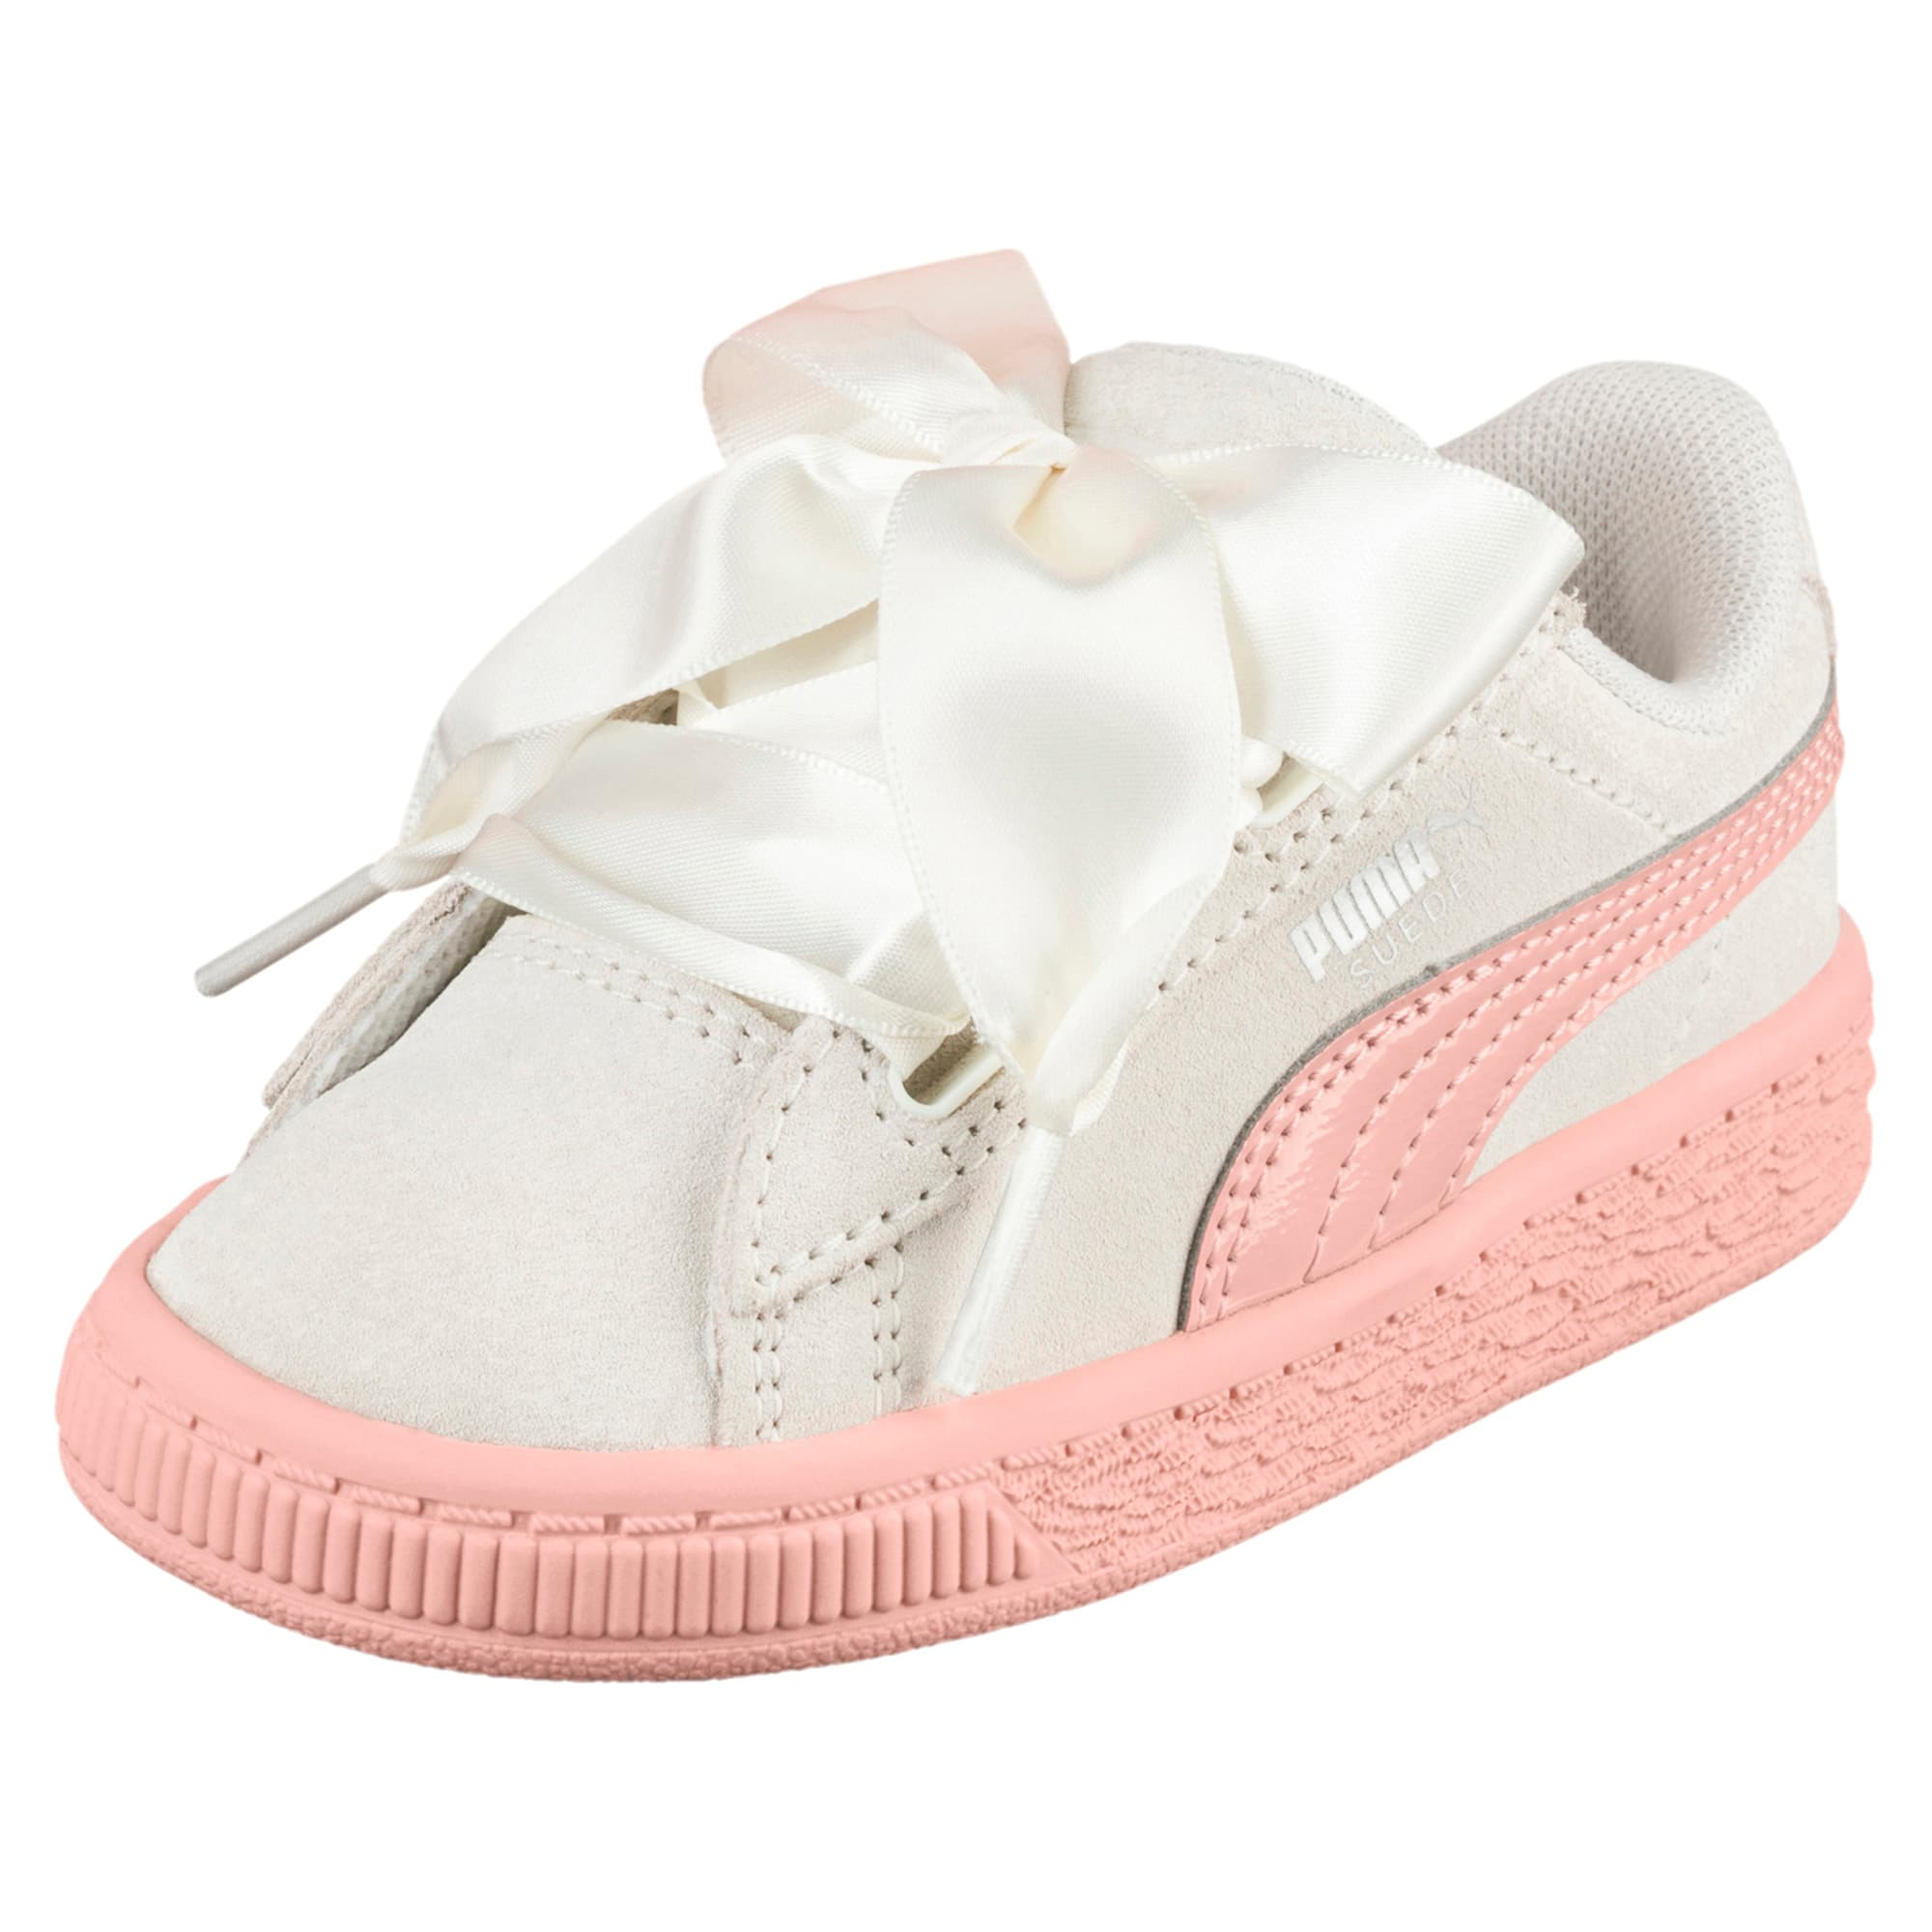 Suede Heart Jewel Toddler Shoes